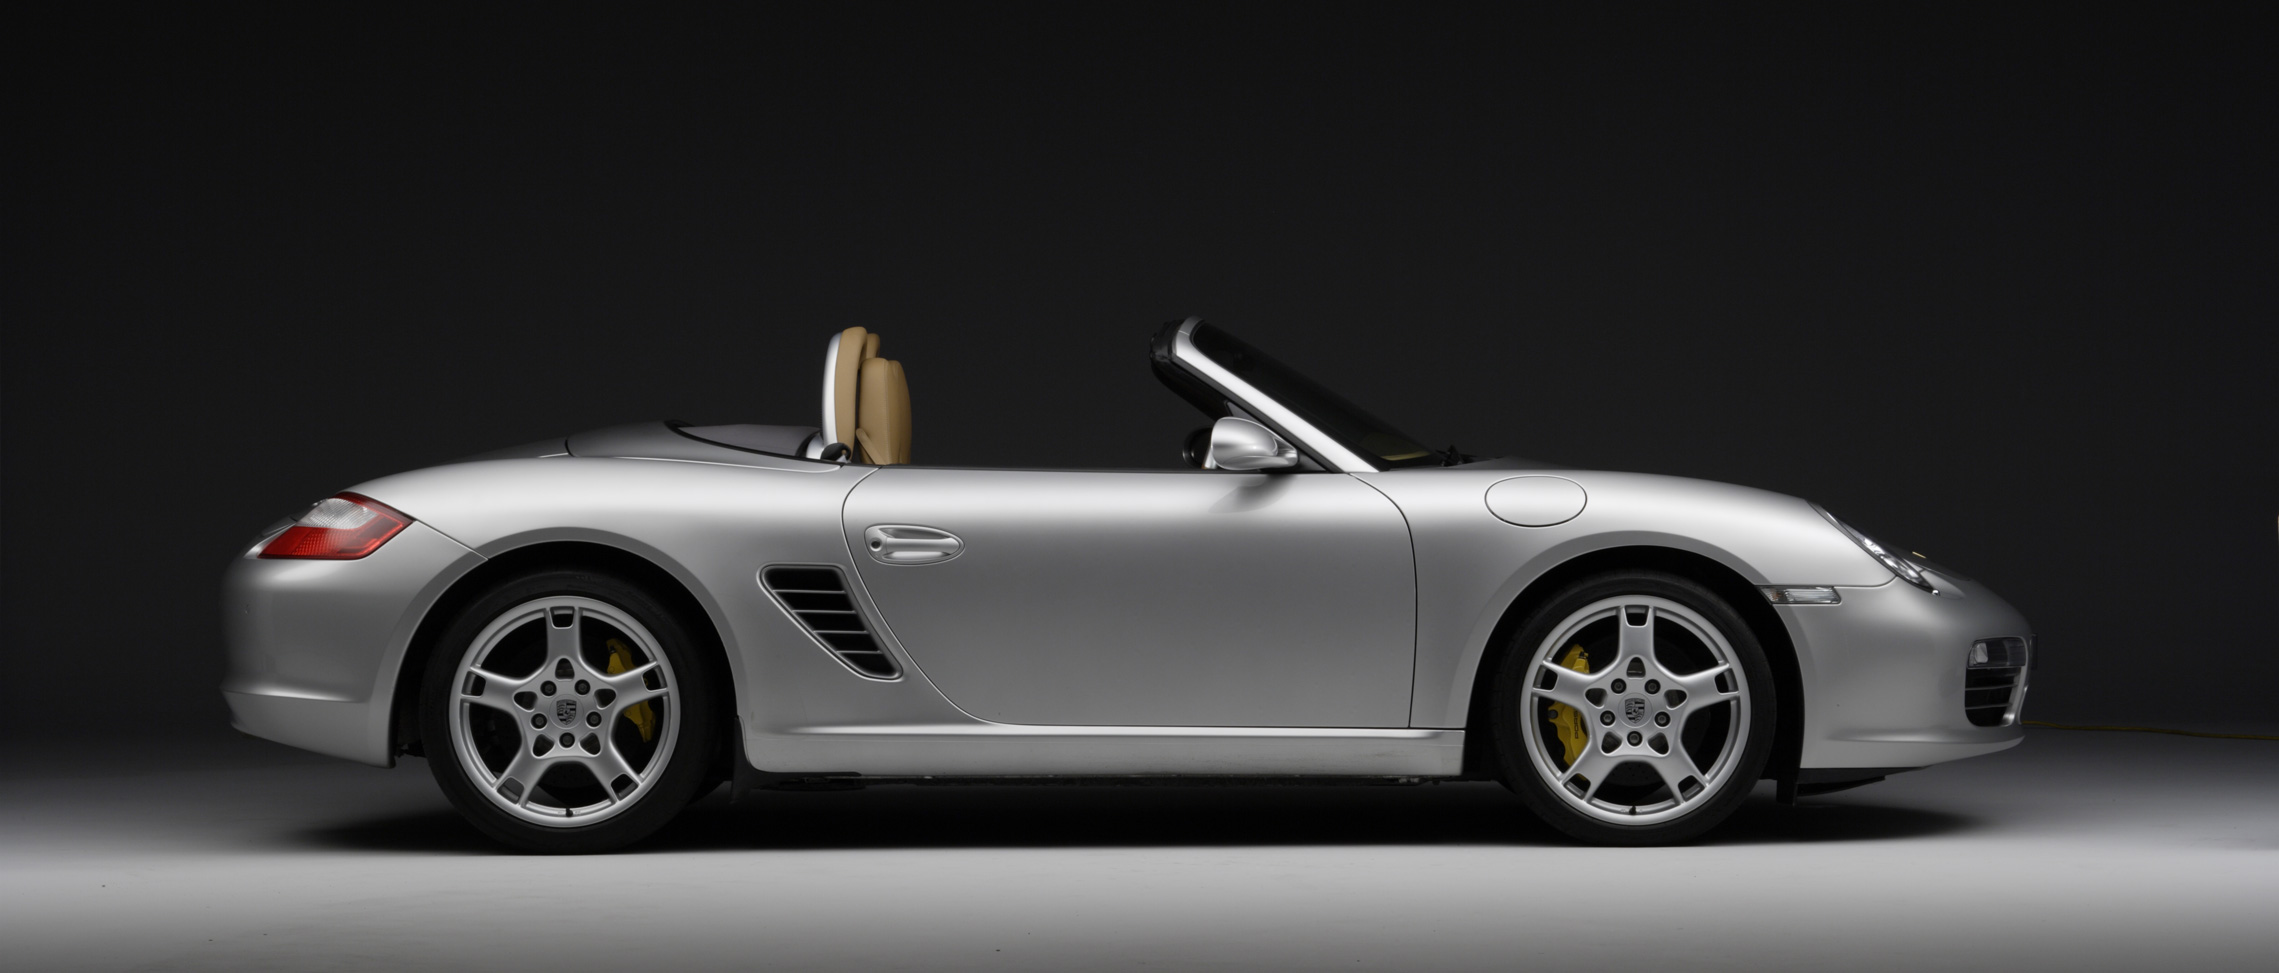 Boxster-01-02